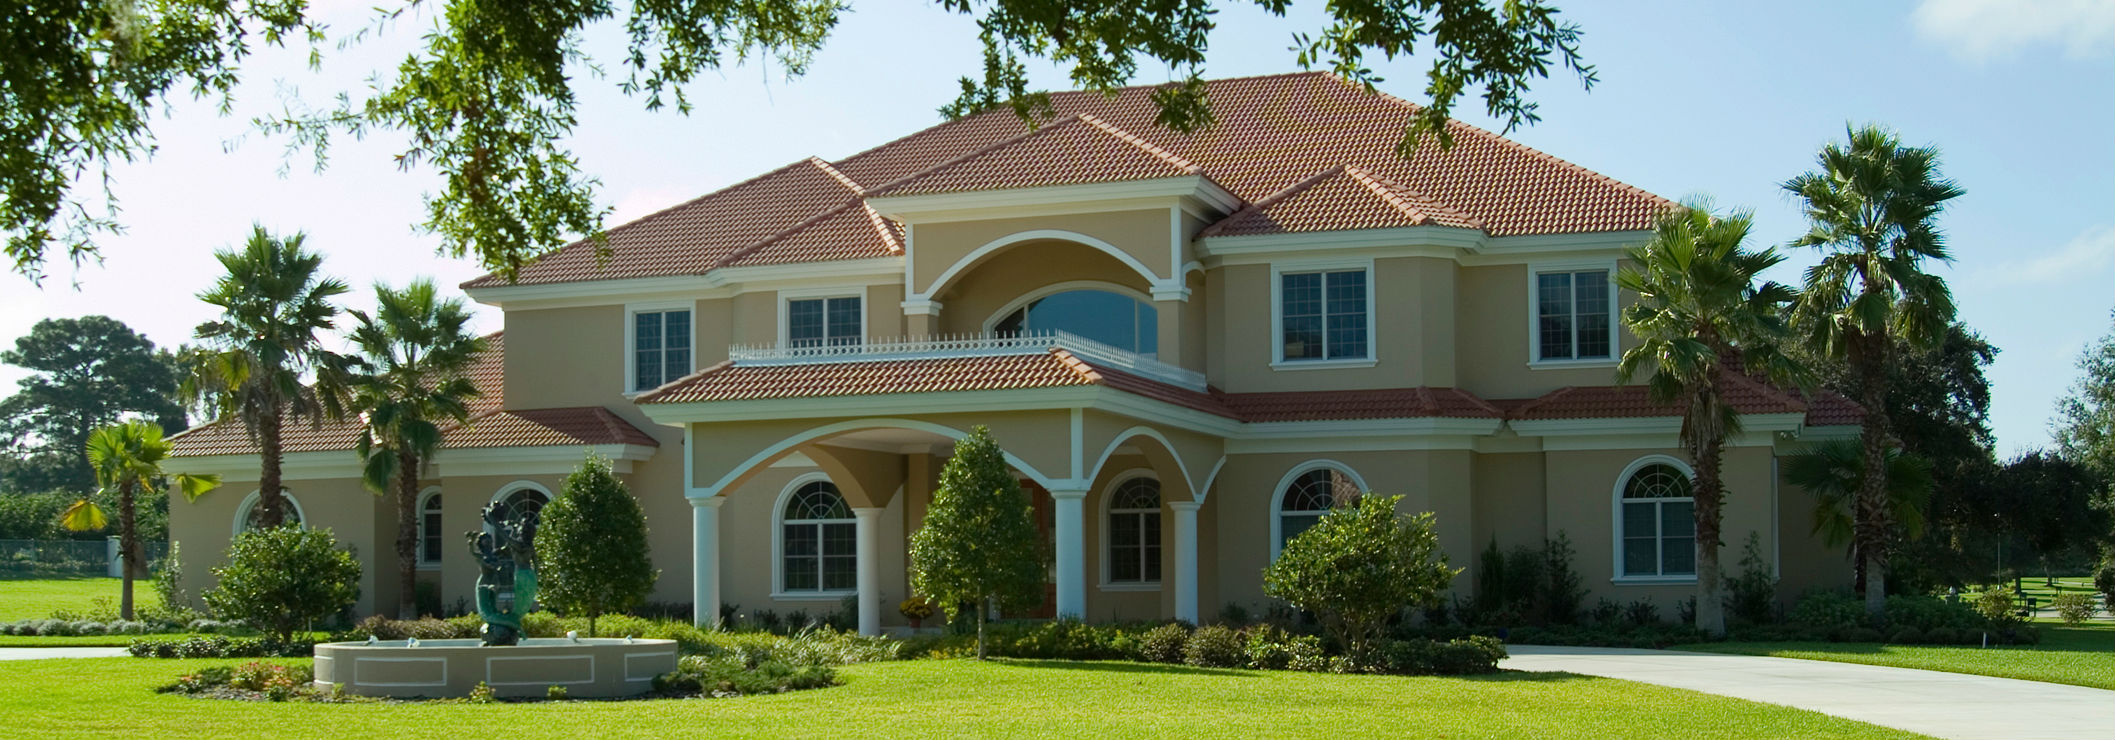 Full Service Home Management In Naples Marco Island